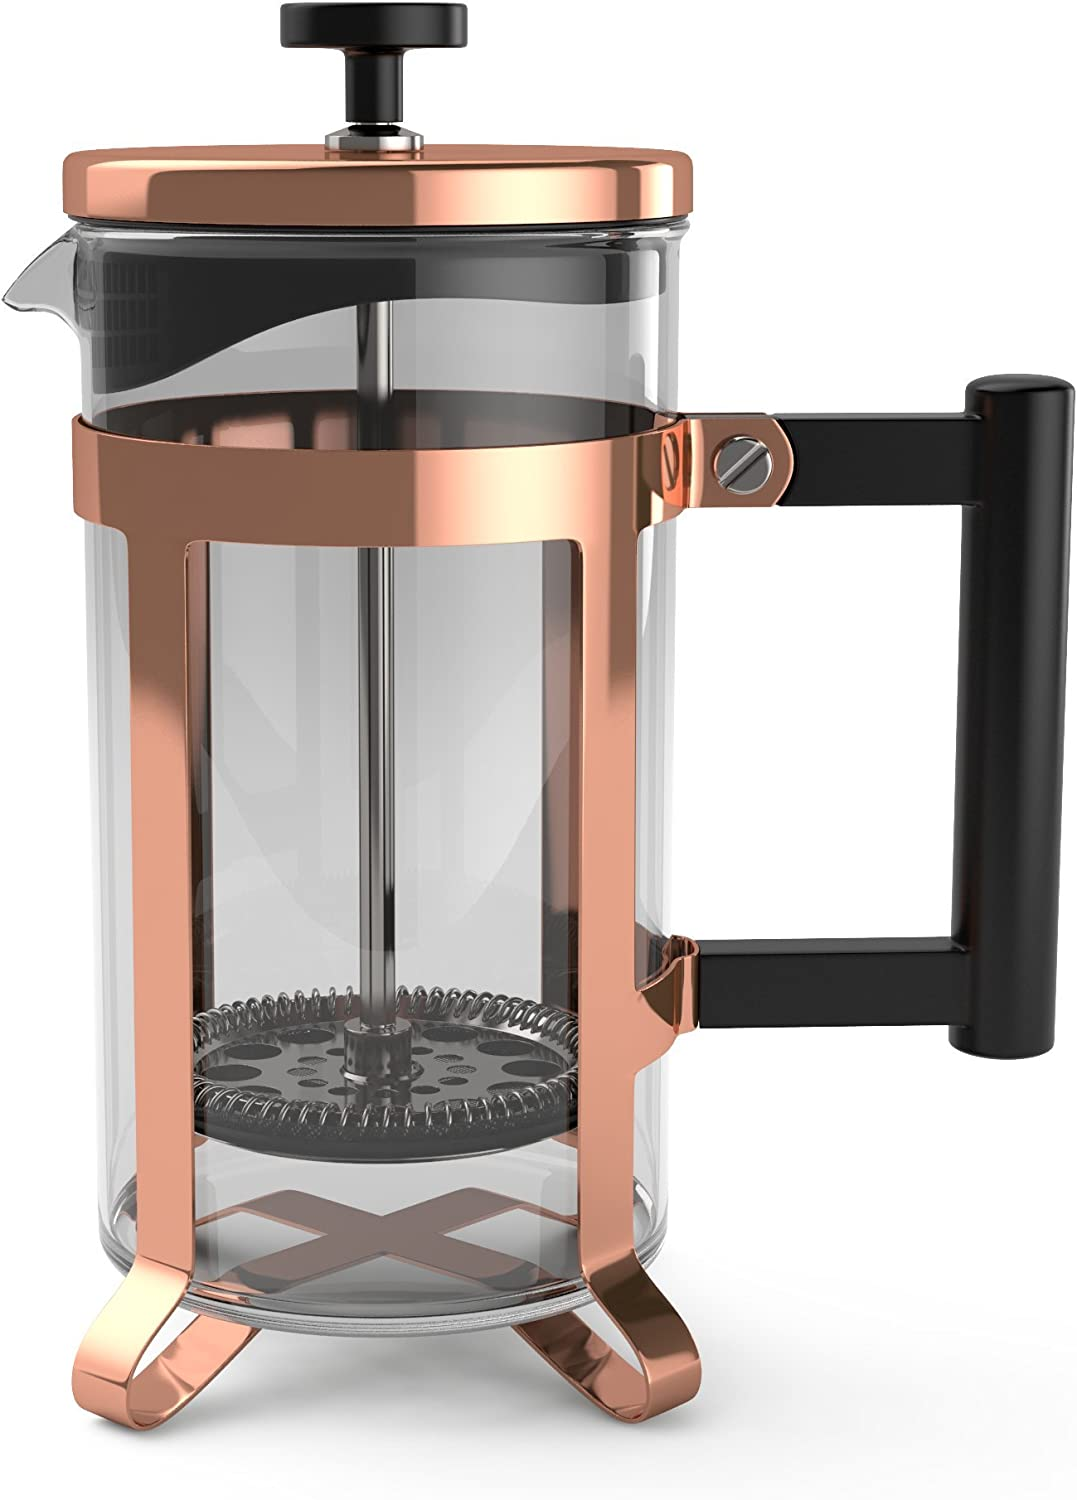 bonVIVO GAZETARO III French Press Coffee Maker, Cold Brew Coffee Makers Machine Made of Stainless Steel And Heat Resistant Borosilicate Glass, Coffee ...